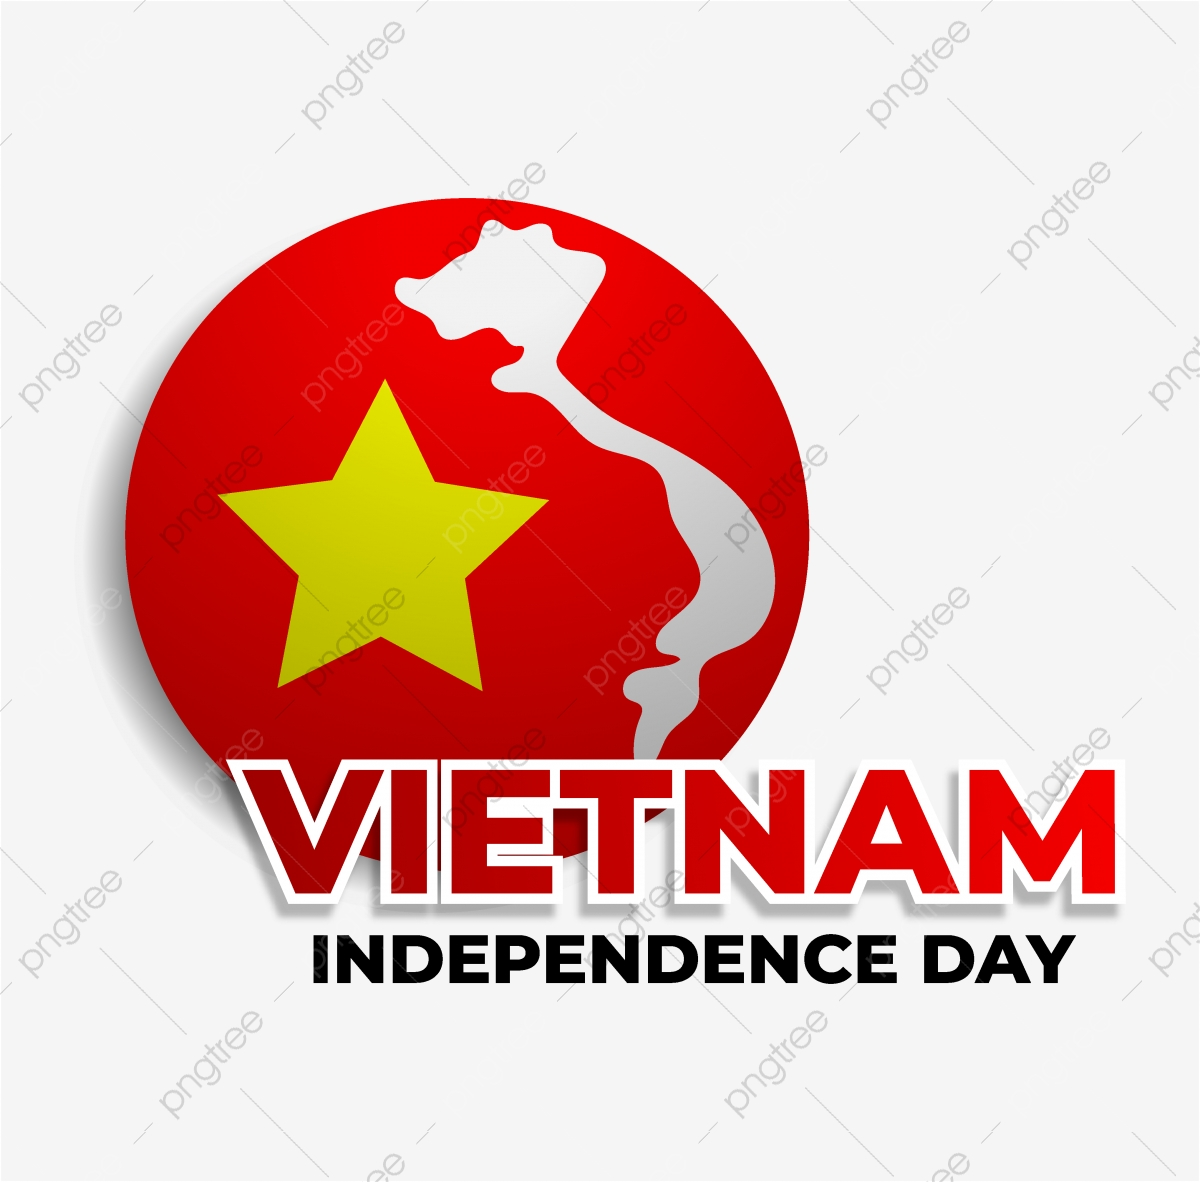 Vietnam Independence Day Design With Rounded Flags And Maps Vietnam Country Independence Png And Vector With Transparent Background For Free Download